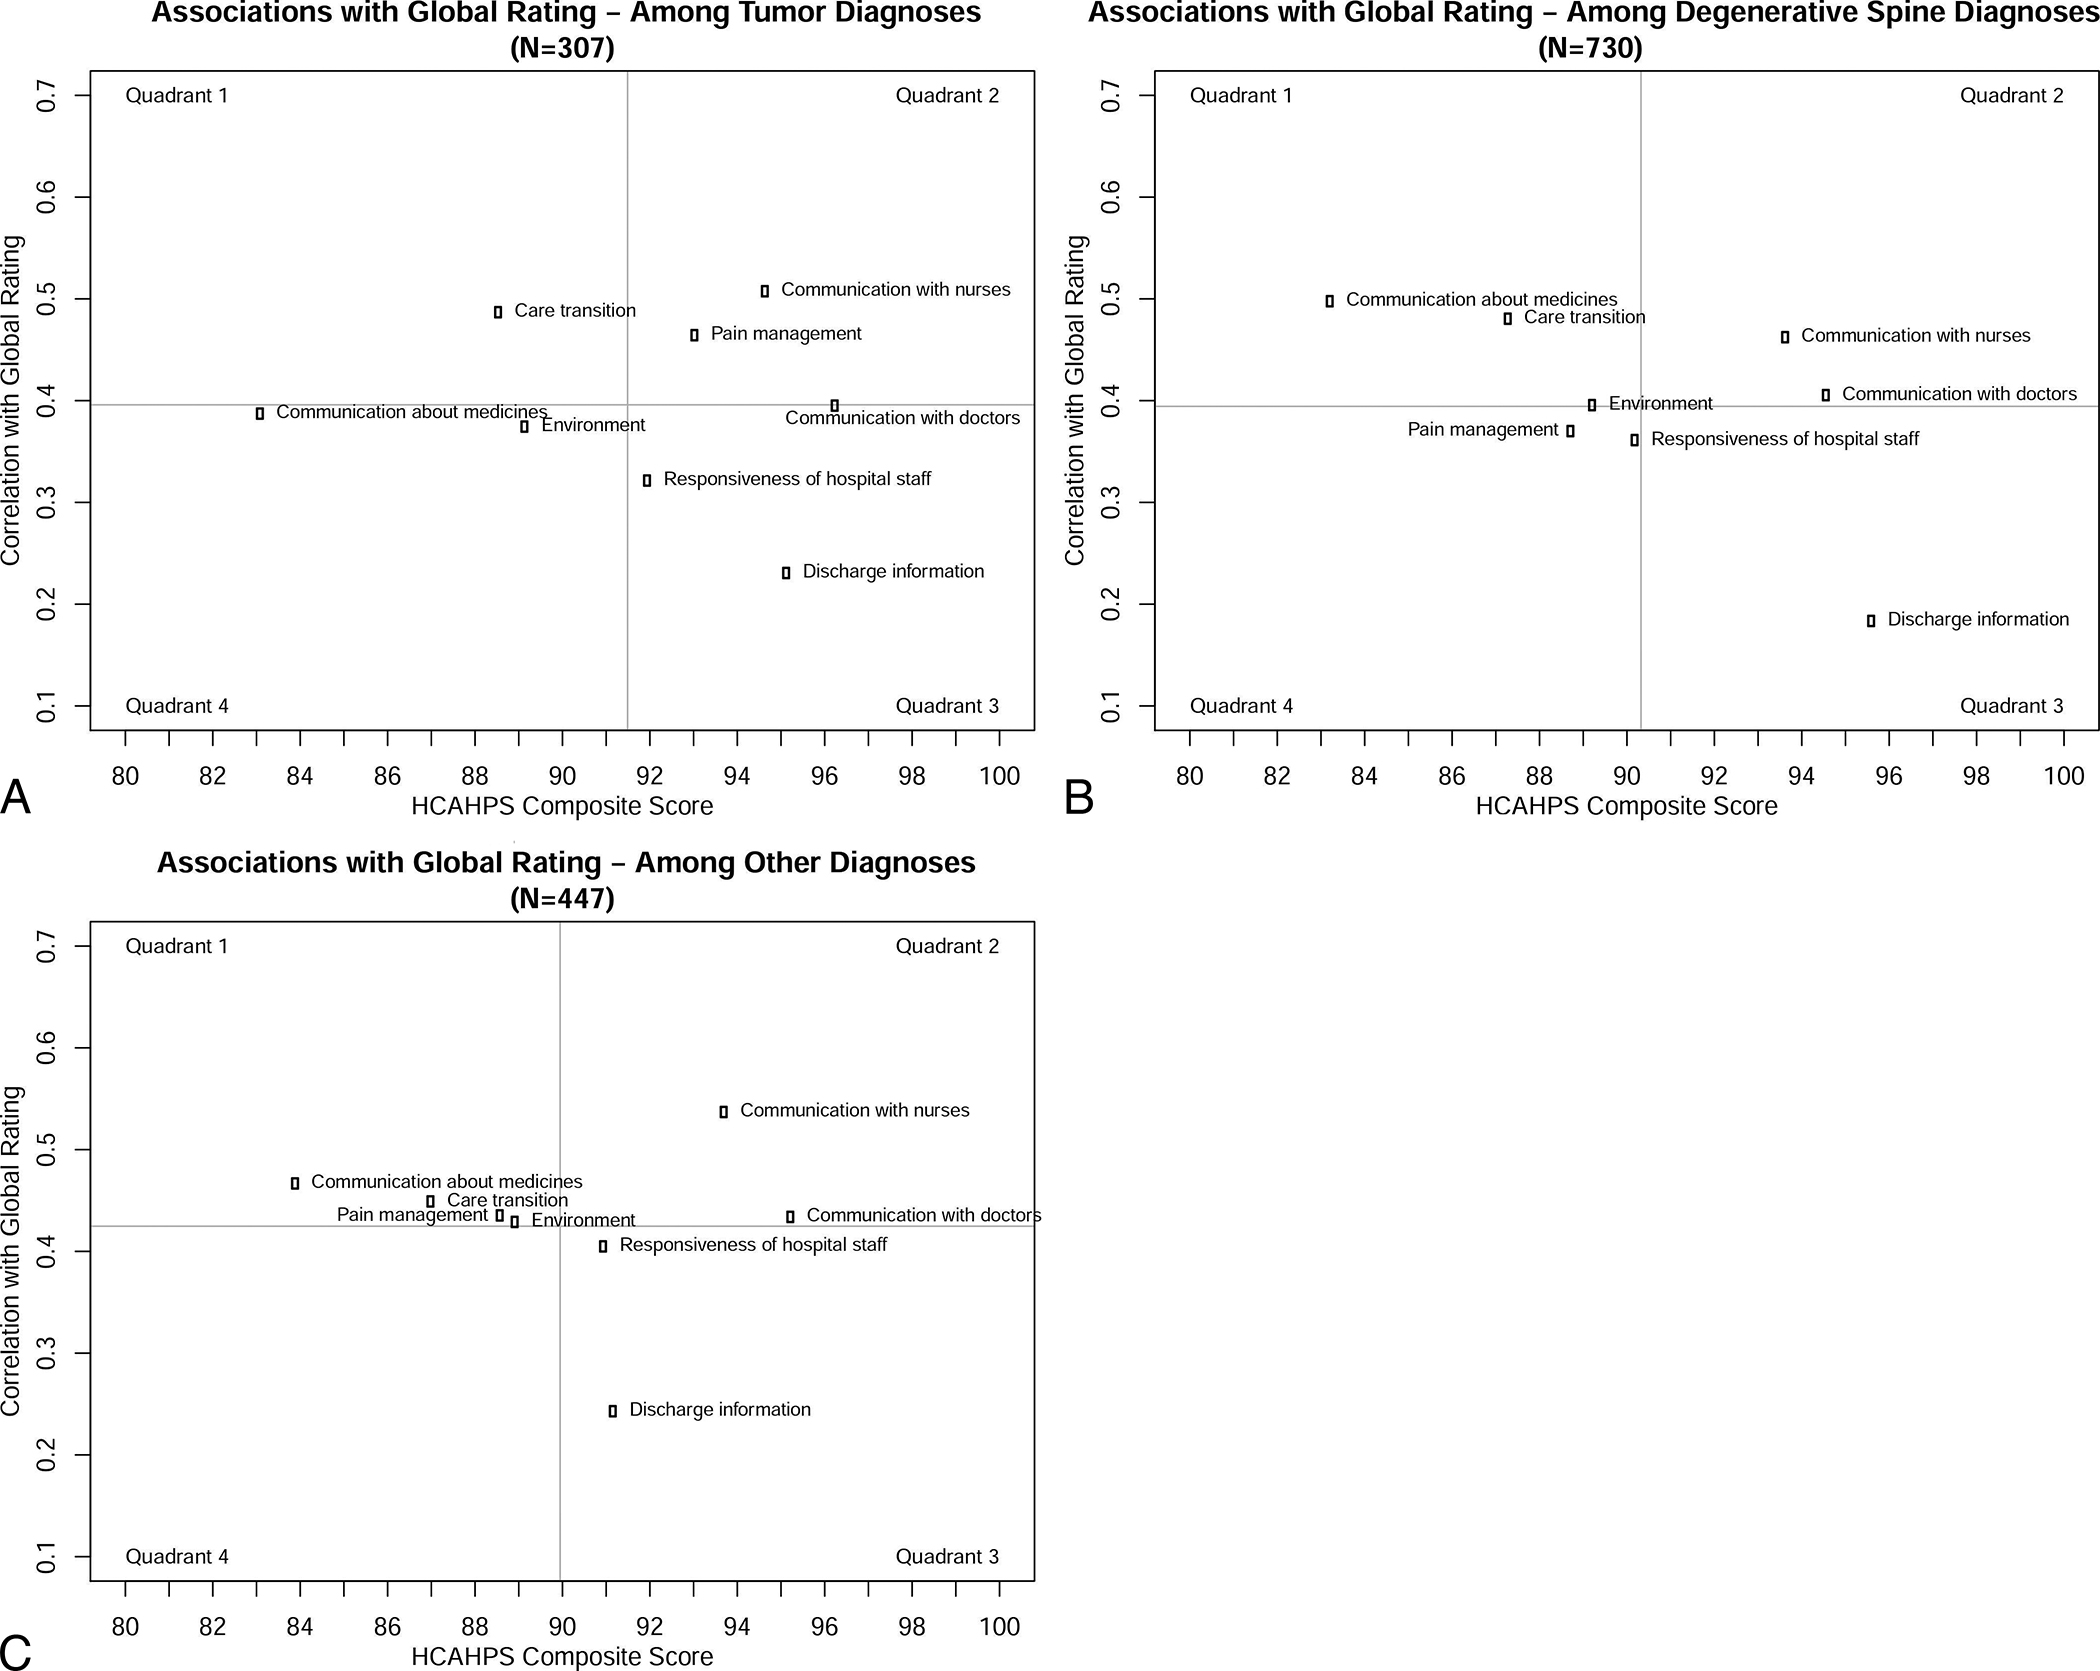 Allstars Raw Intensity 3.17 Test the impact of spine disease, relative to cranial disease, on